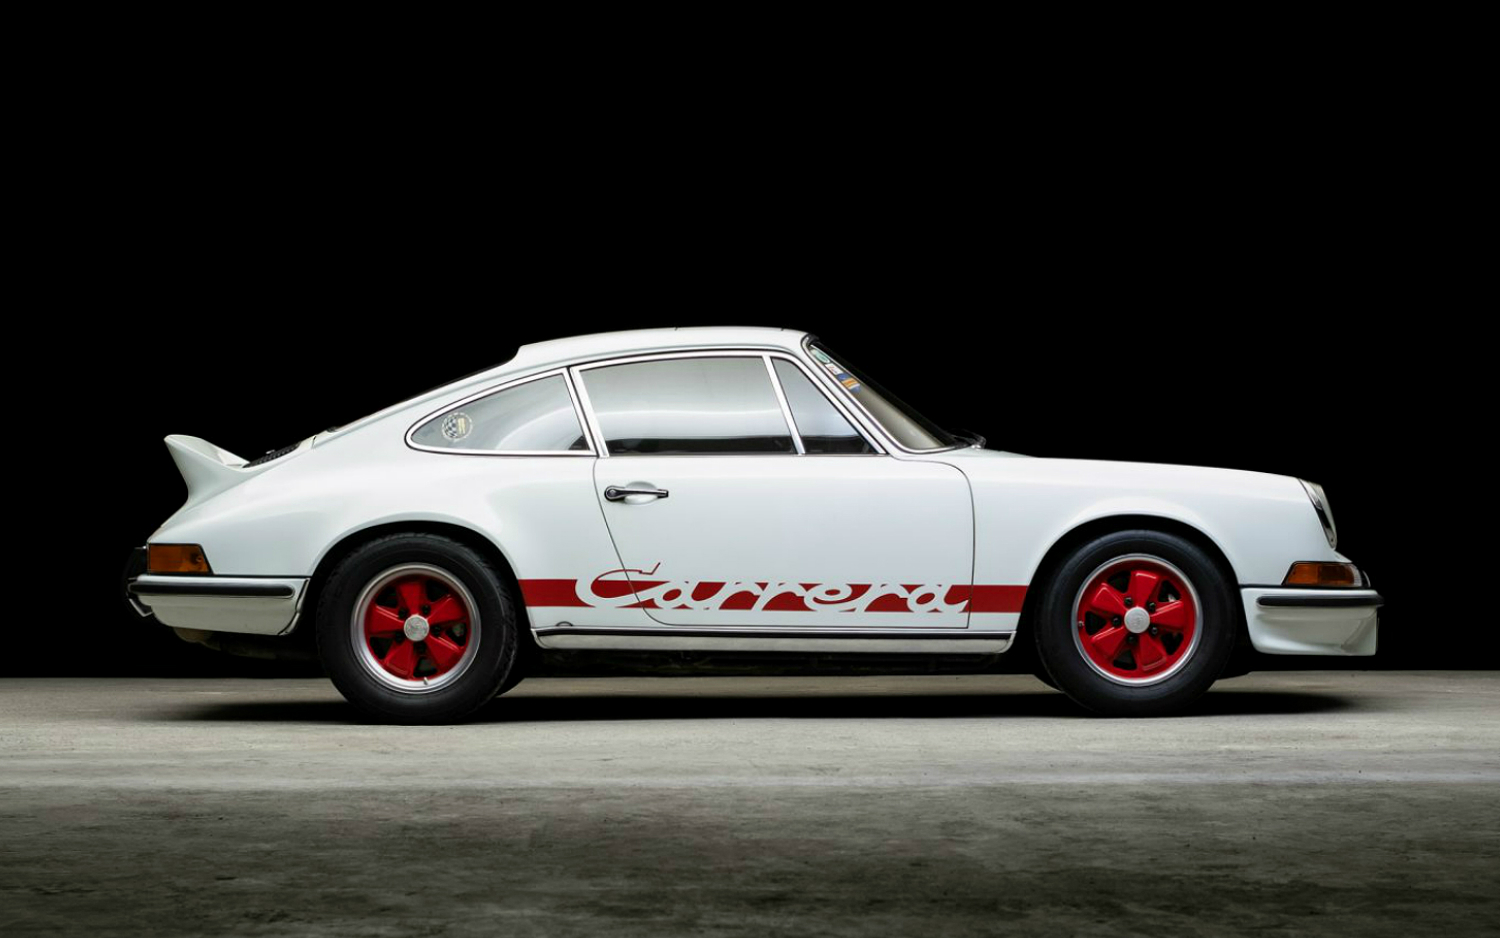 1973 Porsche 911 Carerra RS 2.7 Touring